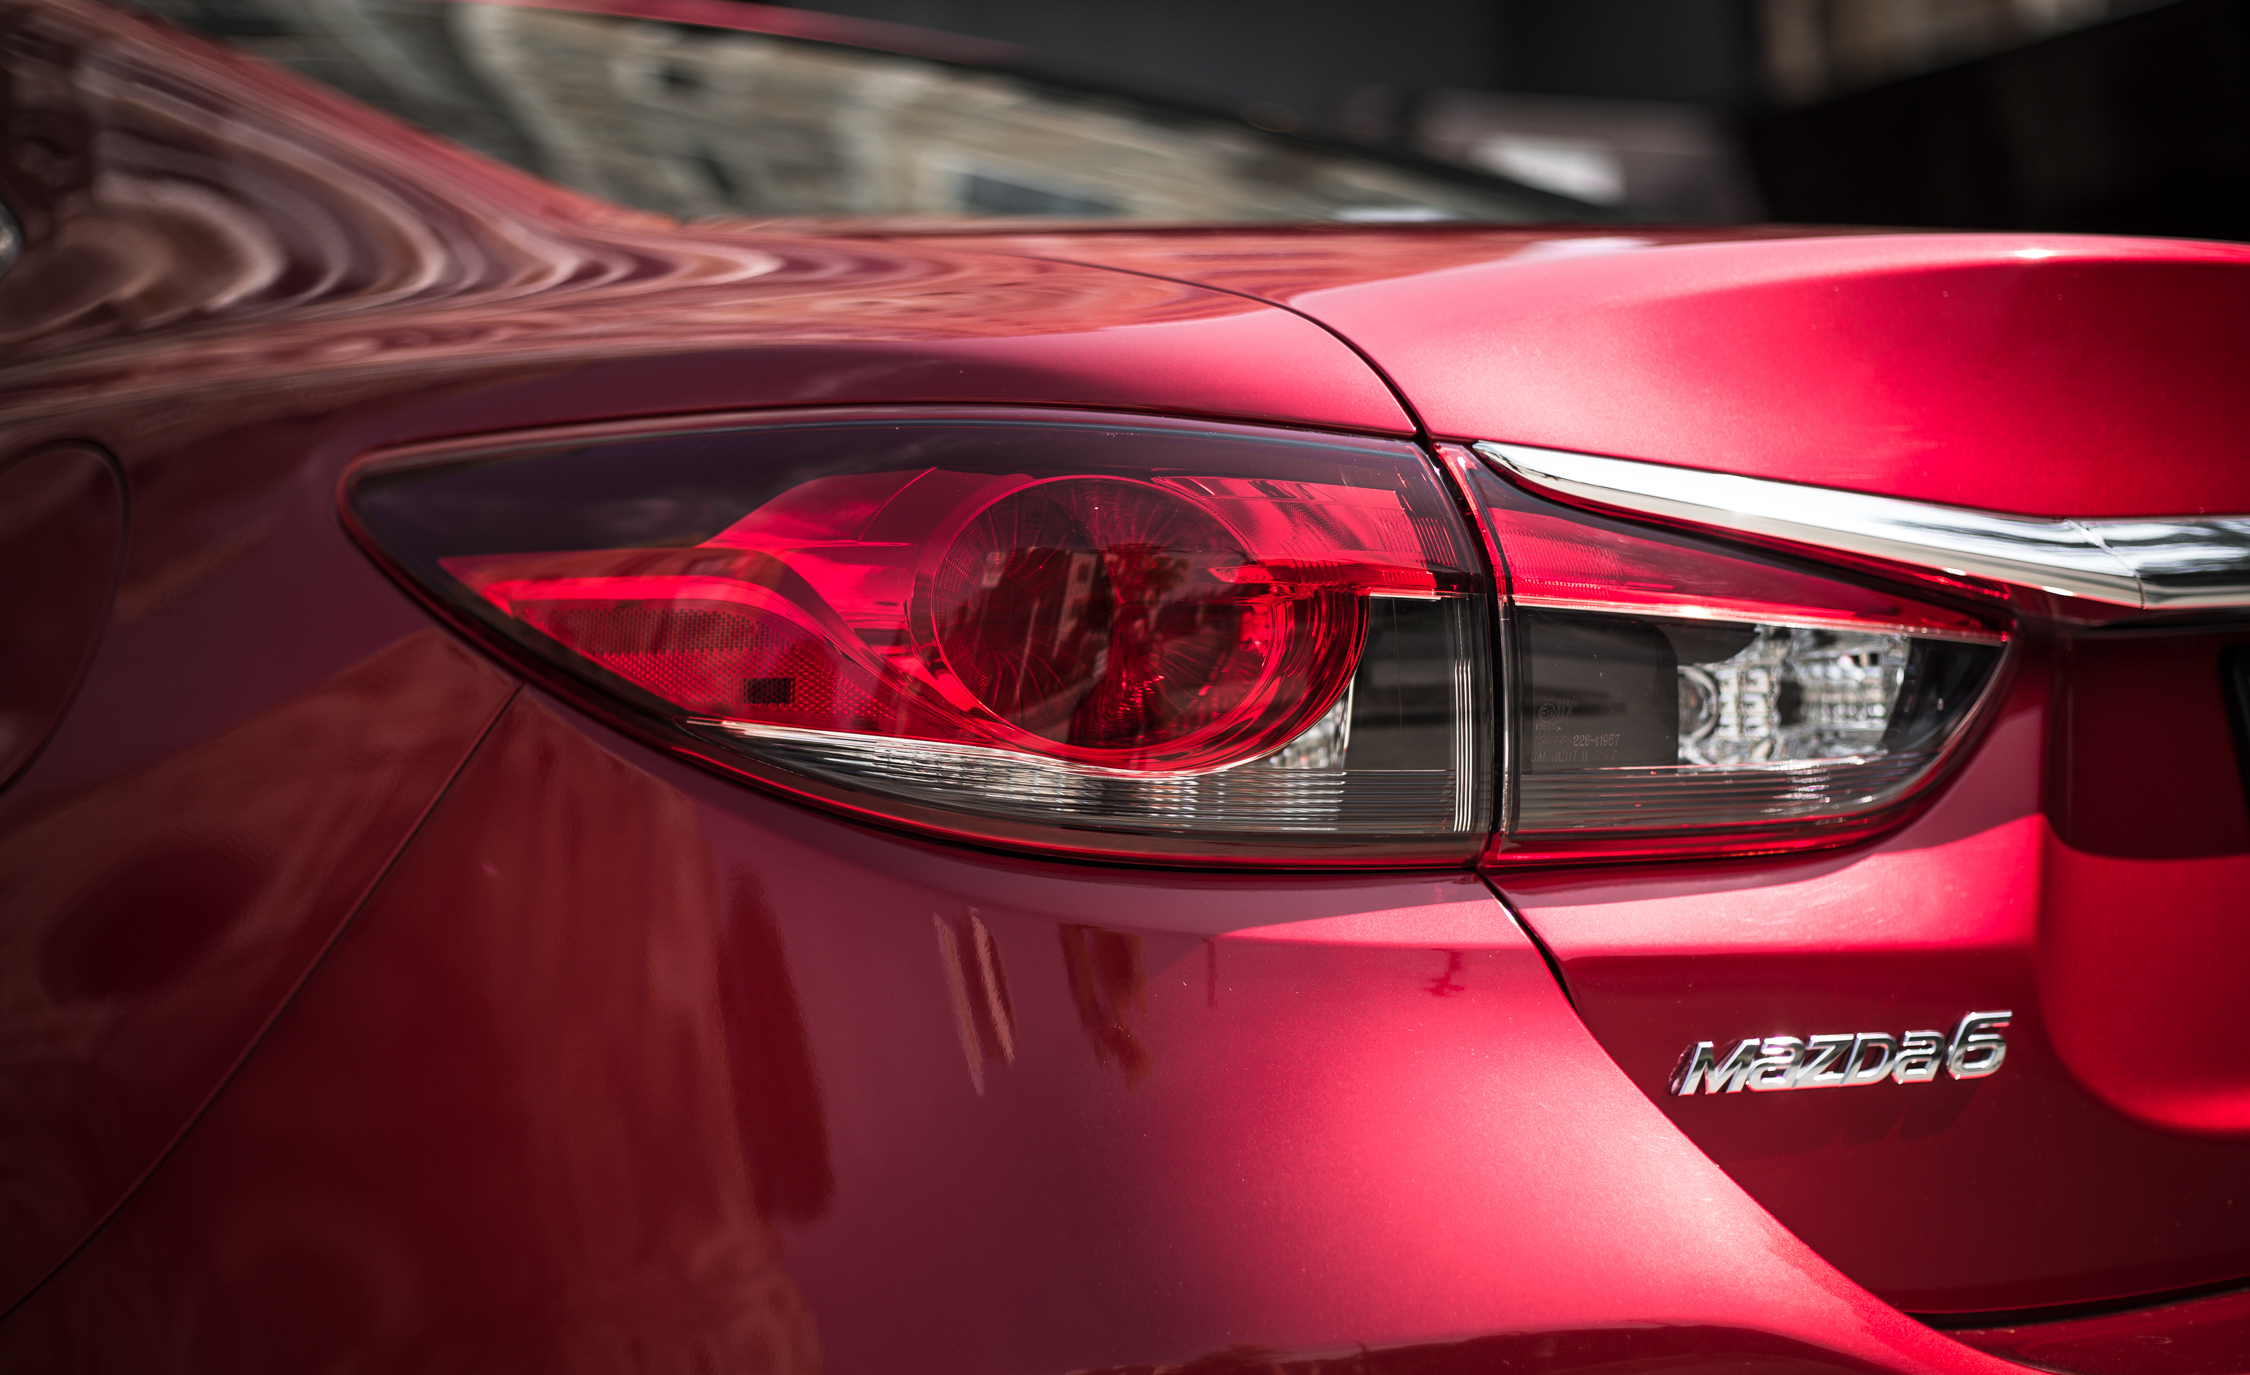 2016 Mazda 6 Touring Exterior Left Taillight